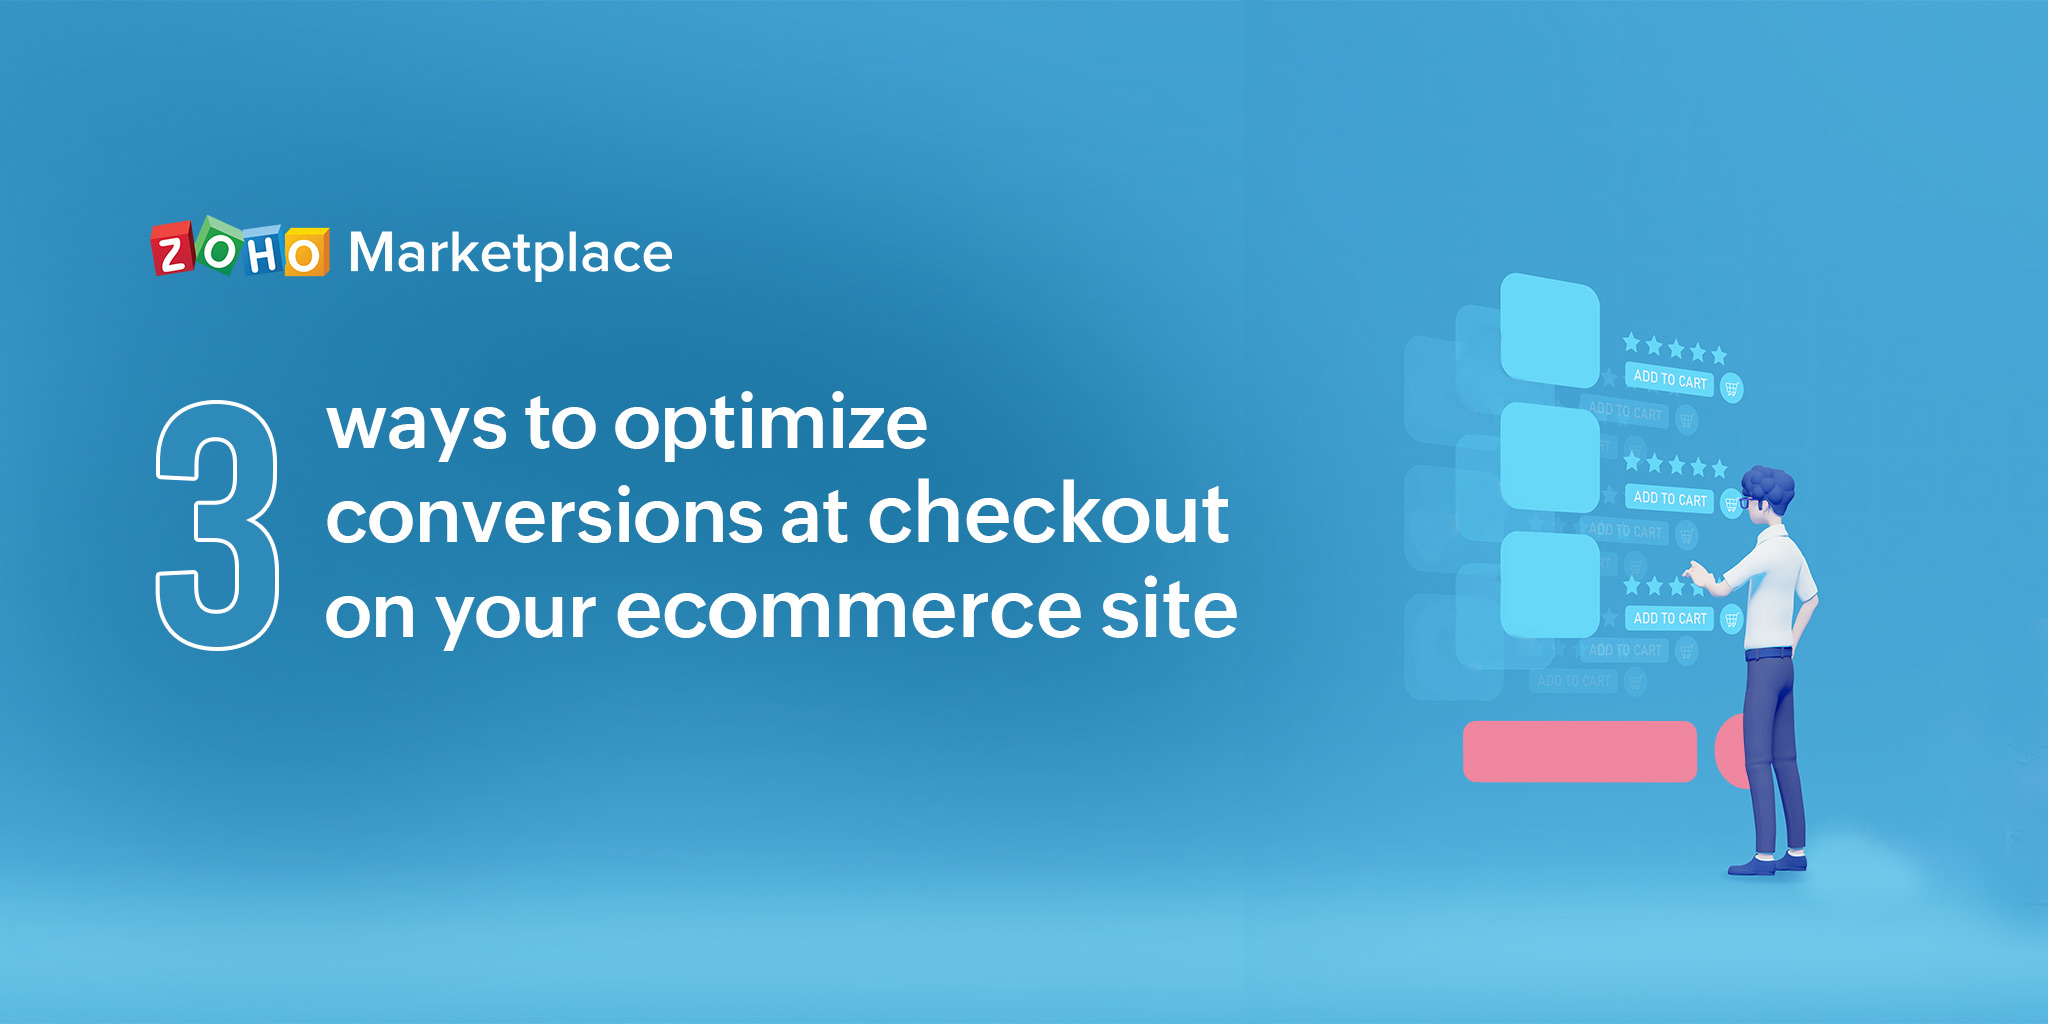 3 ways to optimize conversions at checkout on your ecommerce site